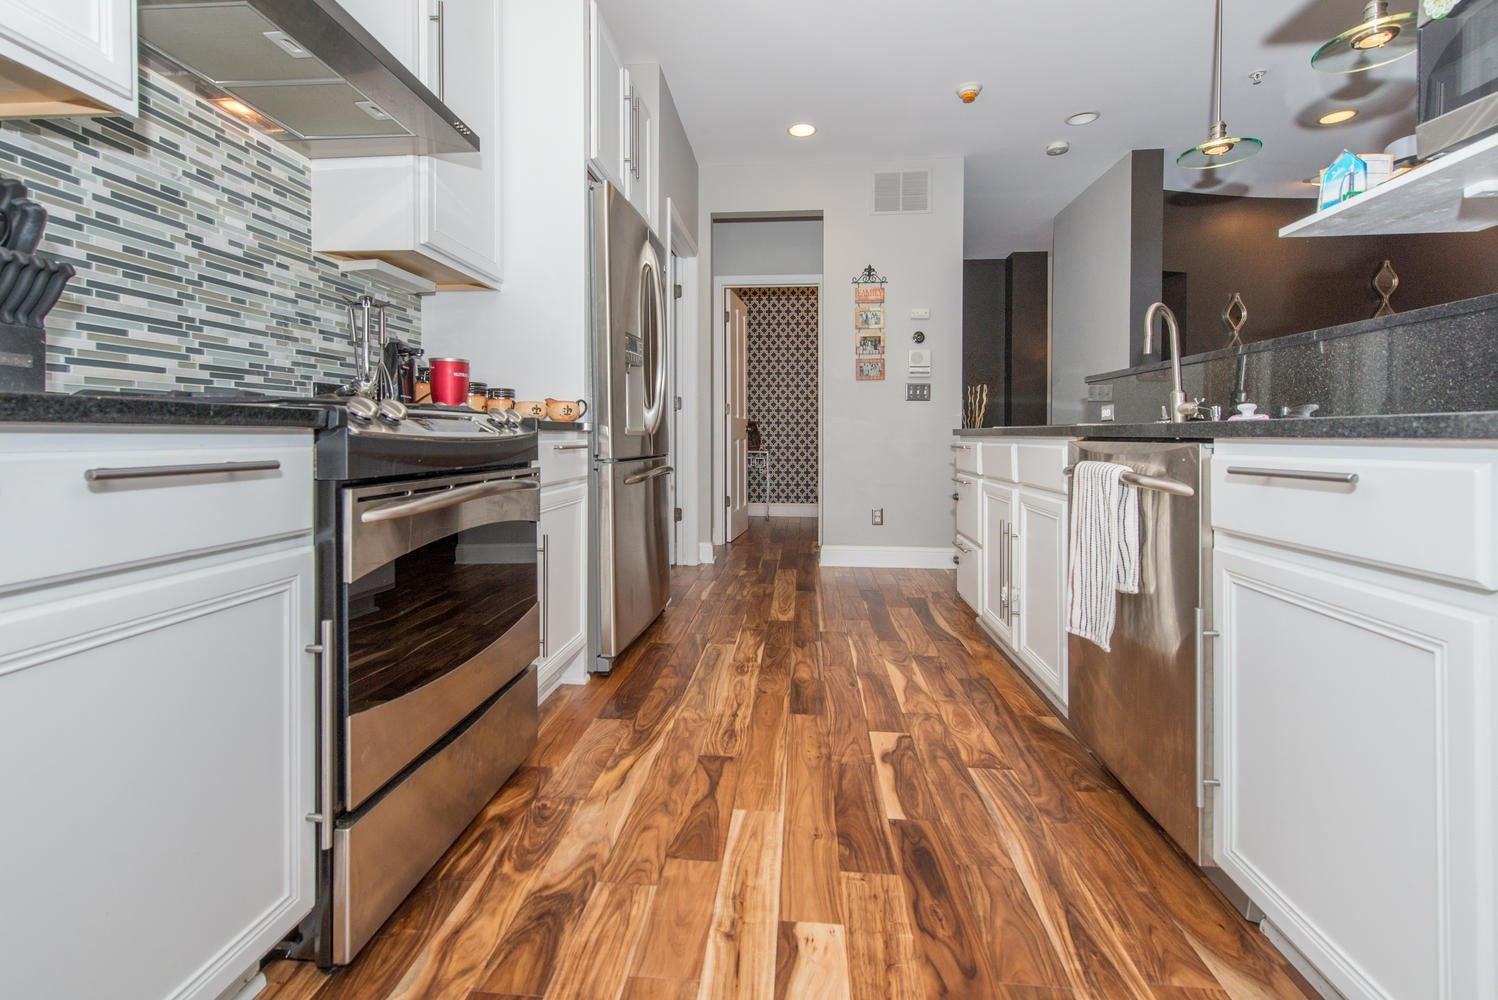 labor cost to install engineered hardwood flooring of 9 mile creek acacia hand scraped acacia confusa wood floors throughout acacia handscraped natural hardwood flooring living room acacia engineered kitchen acacia engineered